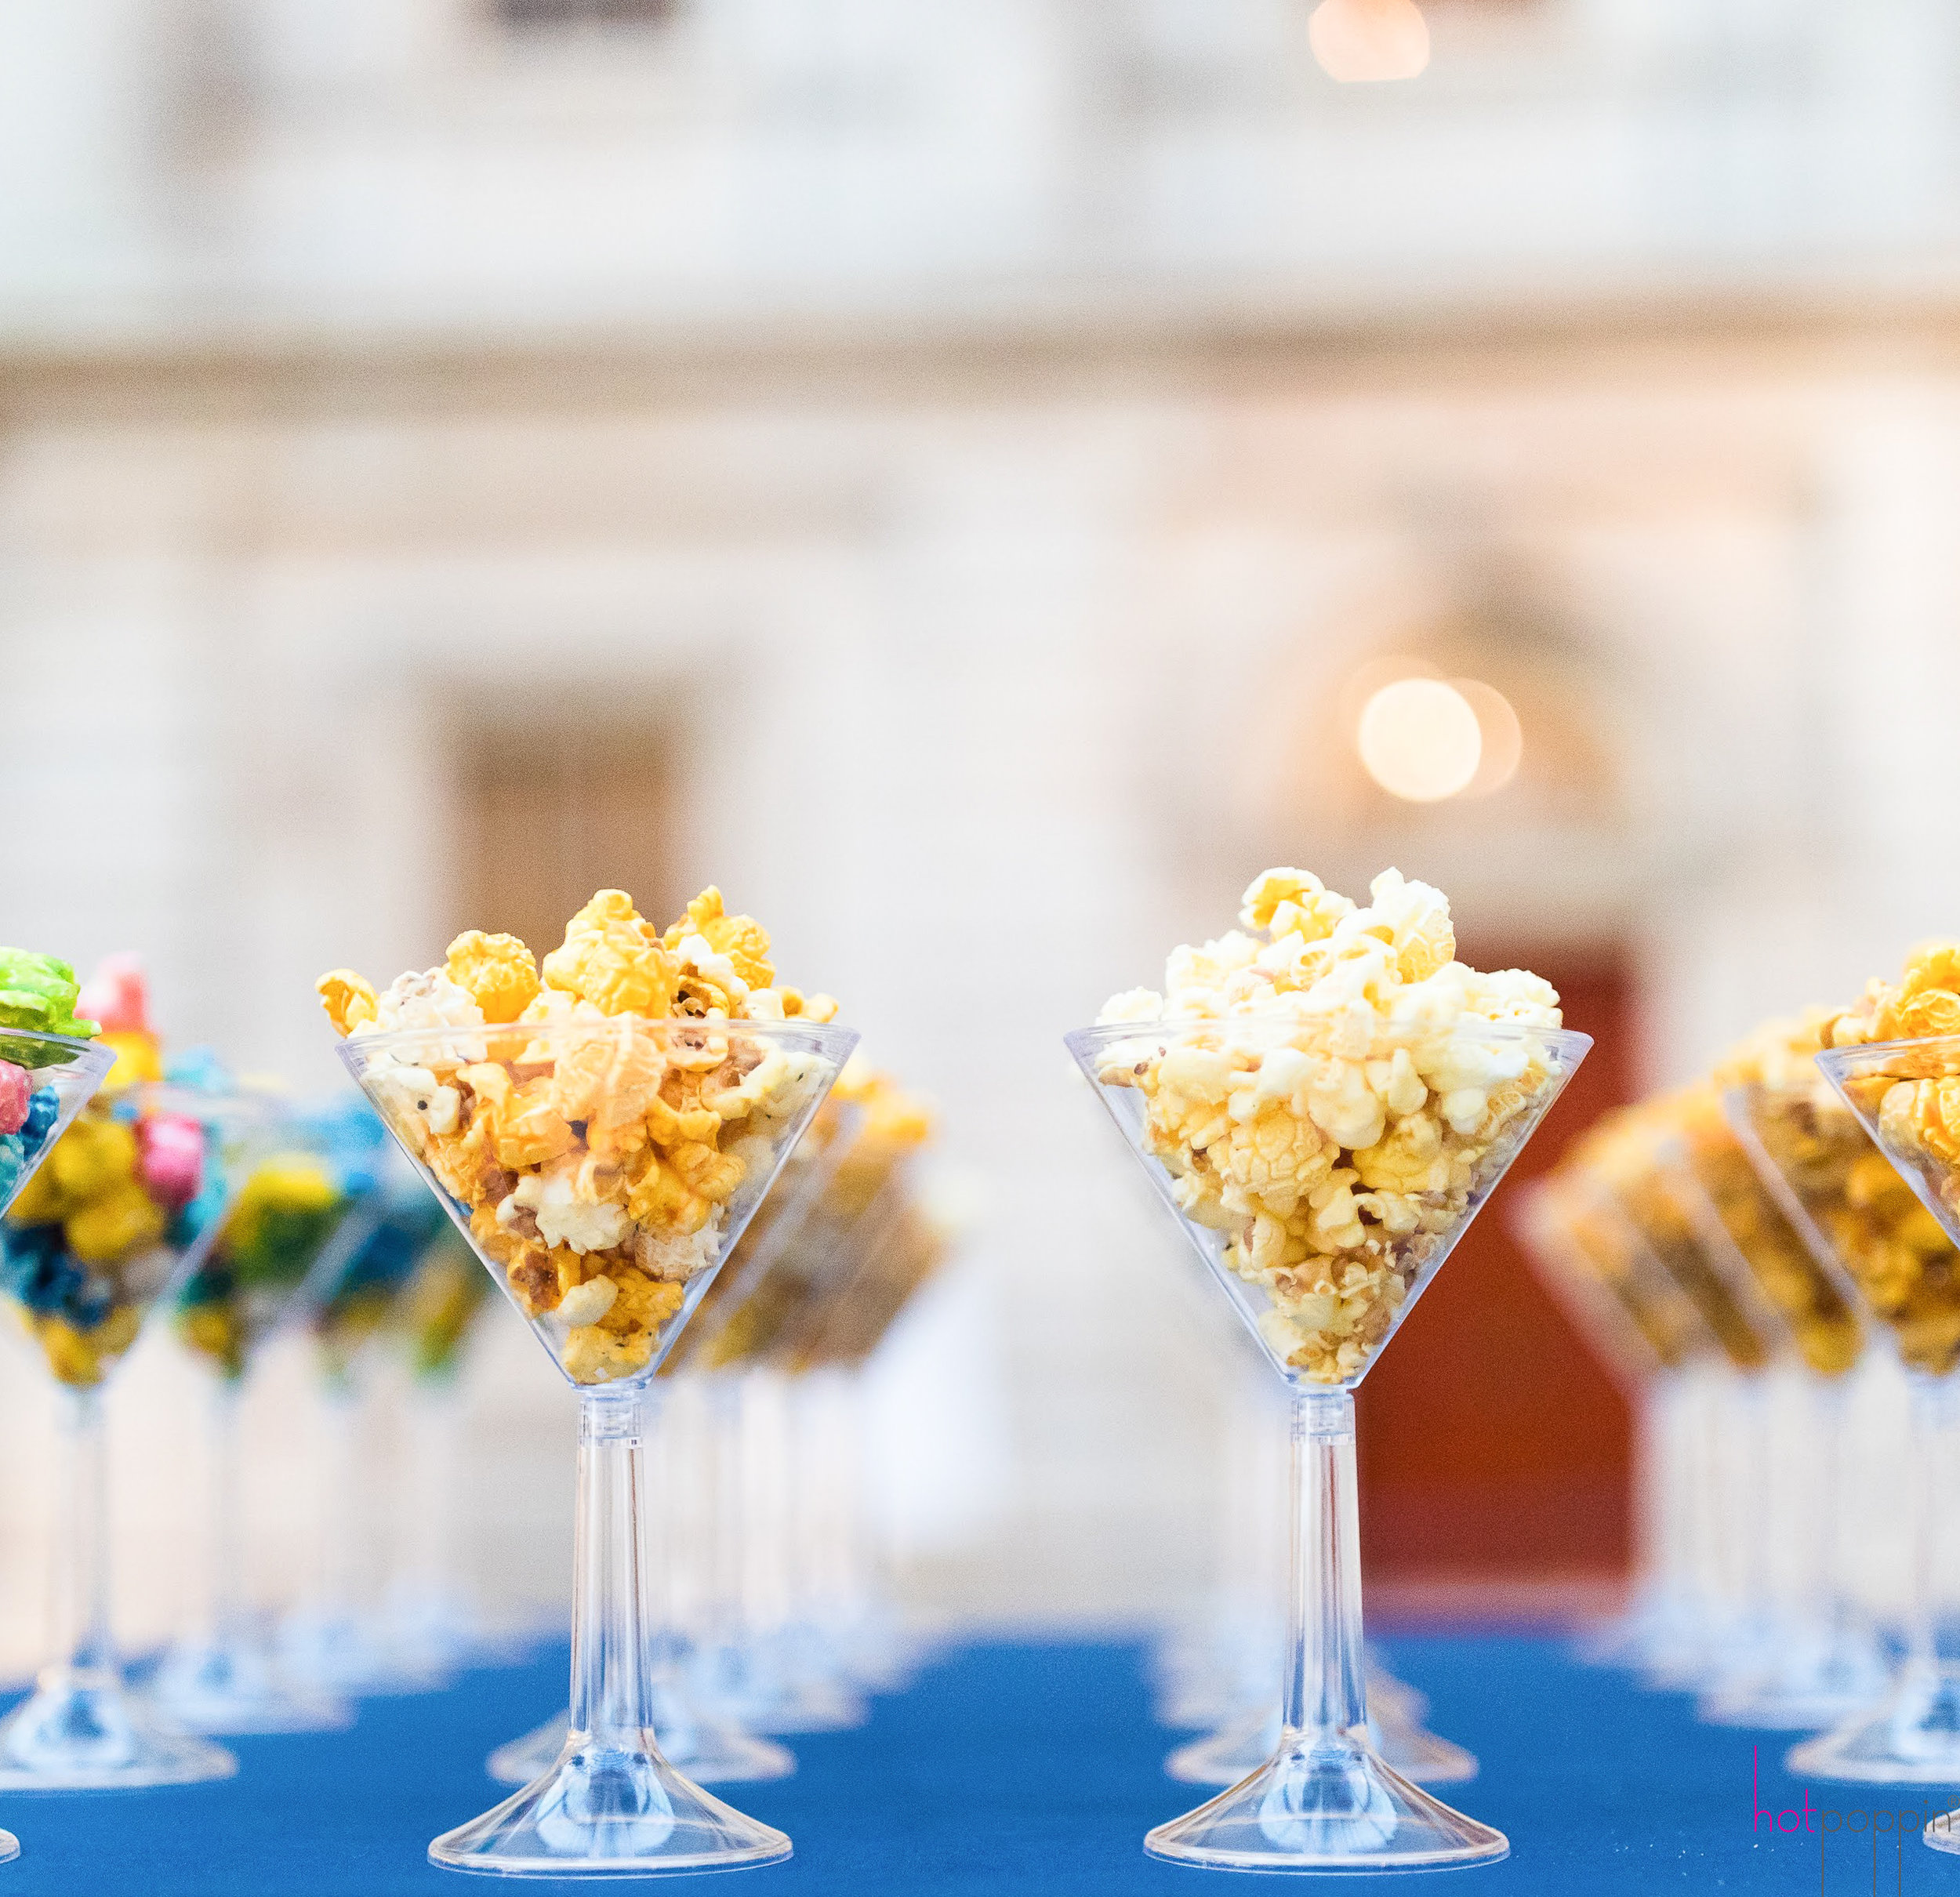 Make Your Life Sweeter Events - The Met Grand Tour - Hotpoppin Gourmet Popcorn Bar